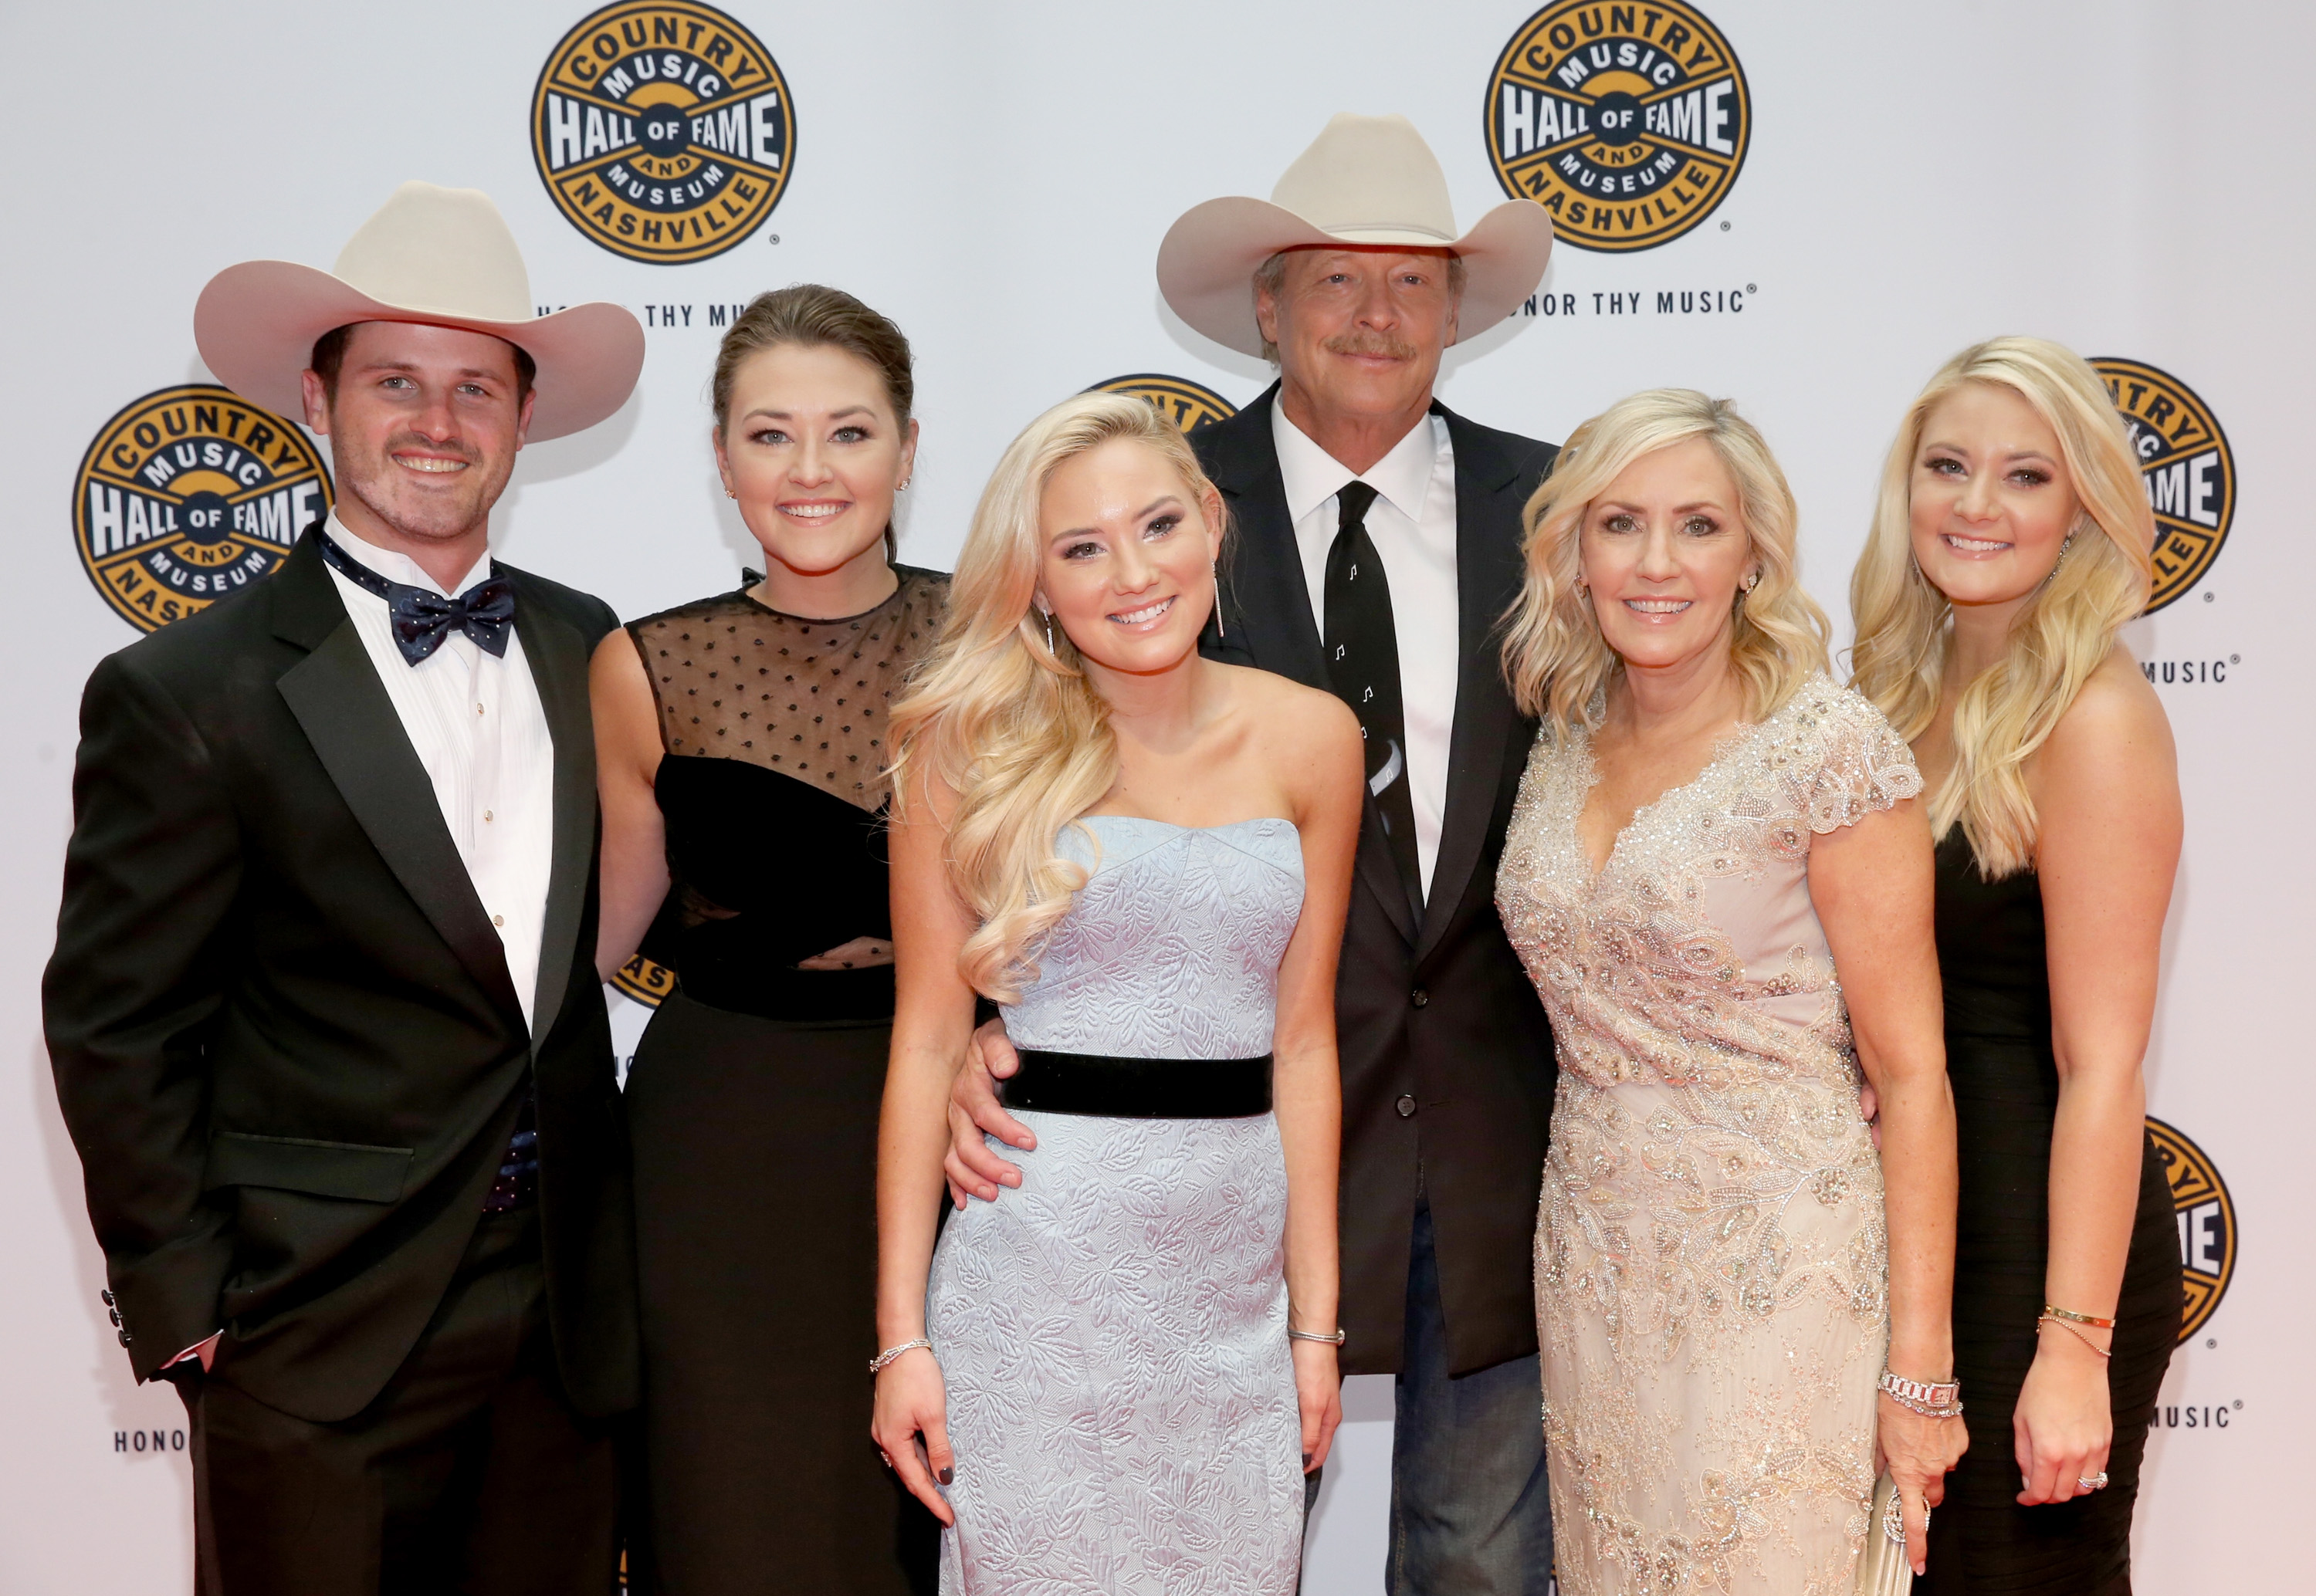 Alan Jackson and family (L-R) Ben Selecman, Mattie Jackson, Dani Jackson, Denise Jackson, and Alexandra Jackson attend the Country Music Hall of Fame and Museum Medallion Ceremony to celebrate 2017 hall of fame inductees Alan Jackson, Jerry Reed And Don Schlitz at Country Music Hall of Fame and Museum on October 22, 2017 in Nashville, Tennessee.